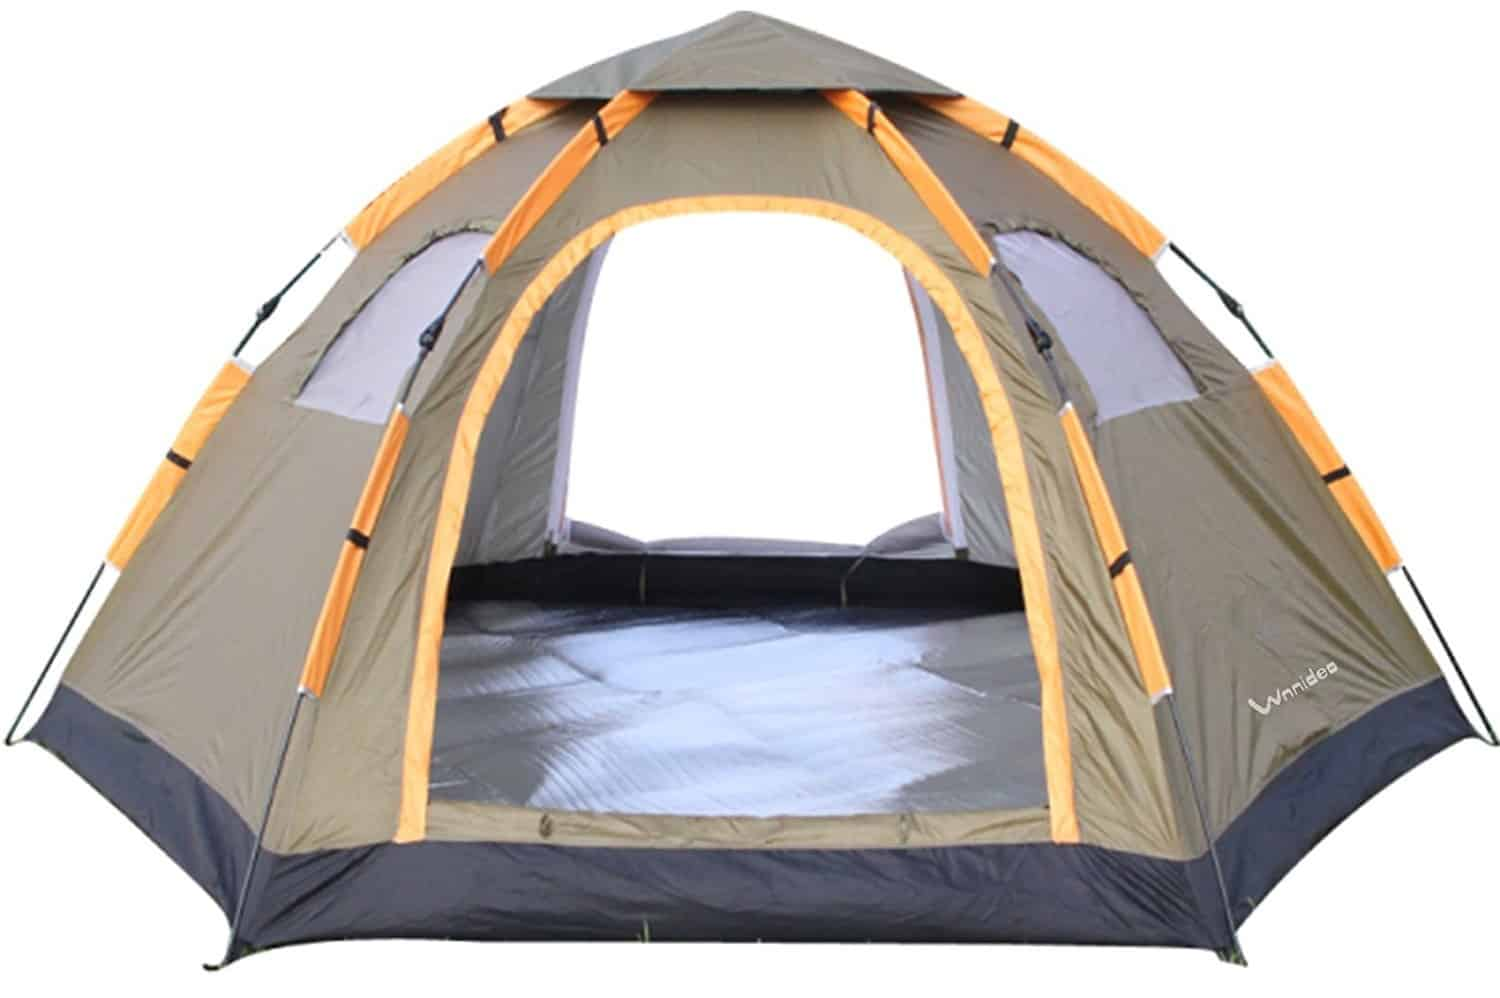 Best Large Pop Up Tent – Wnnideo